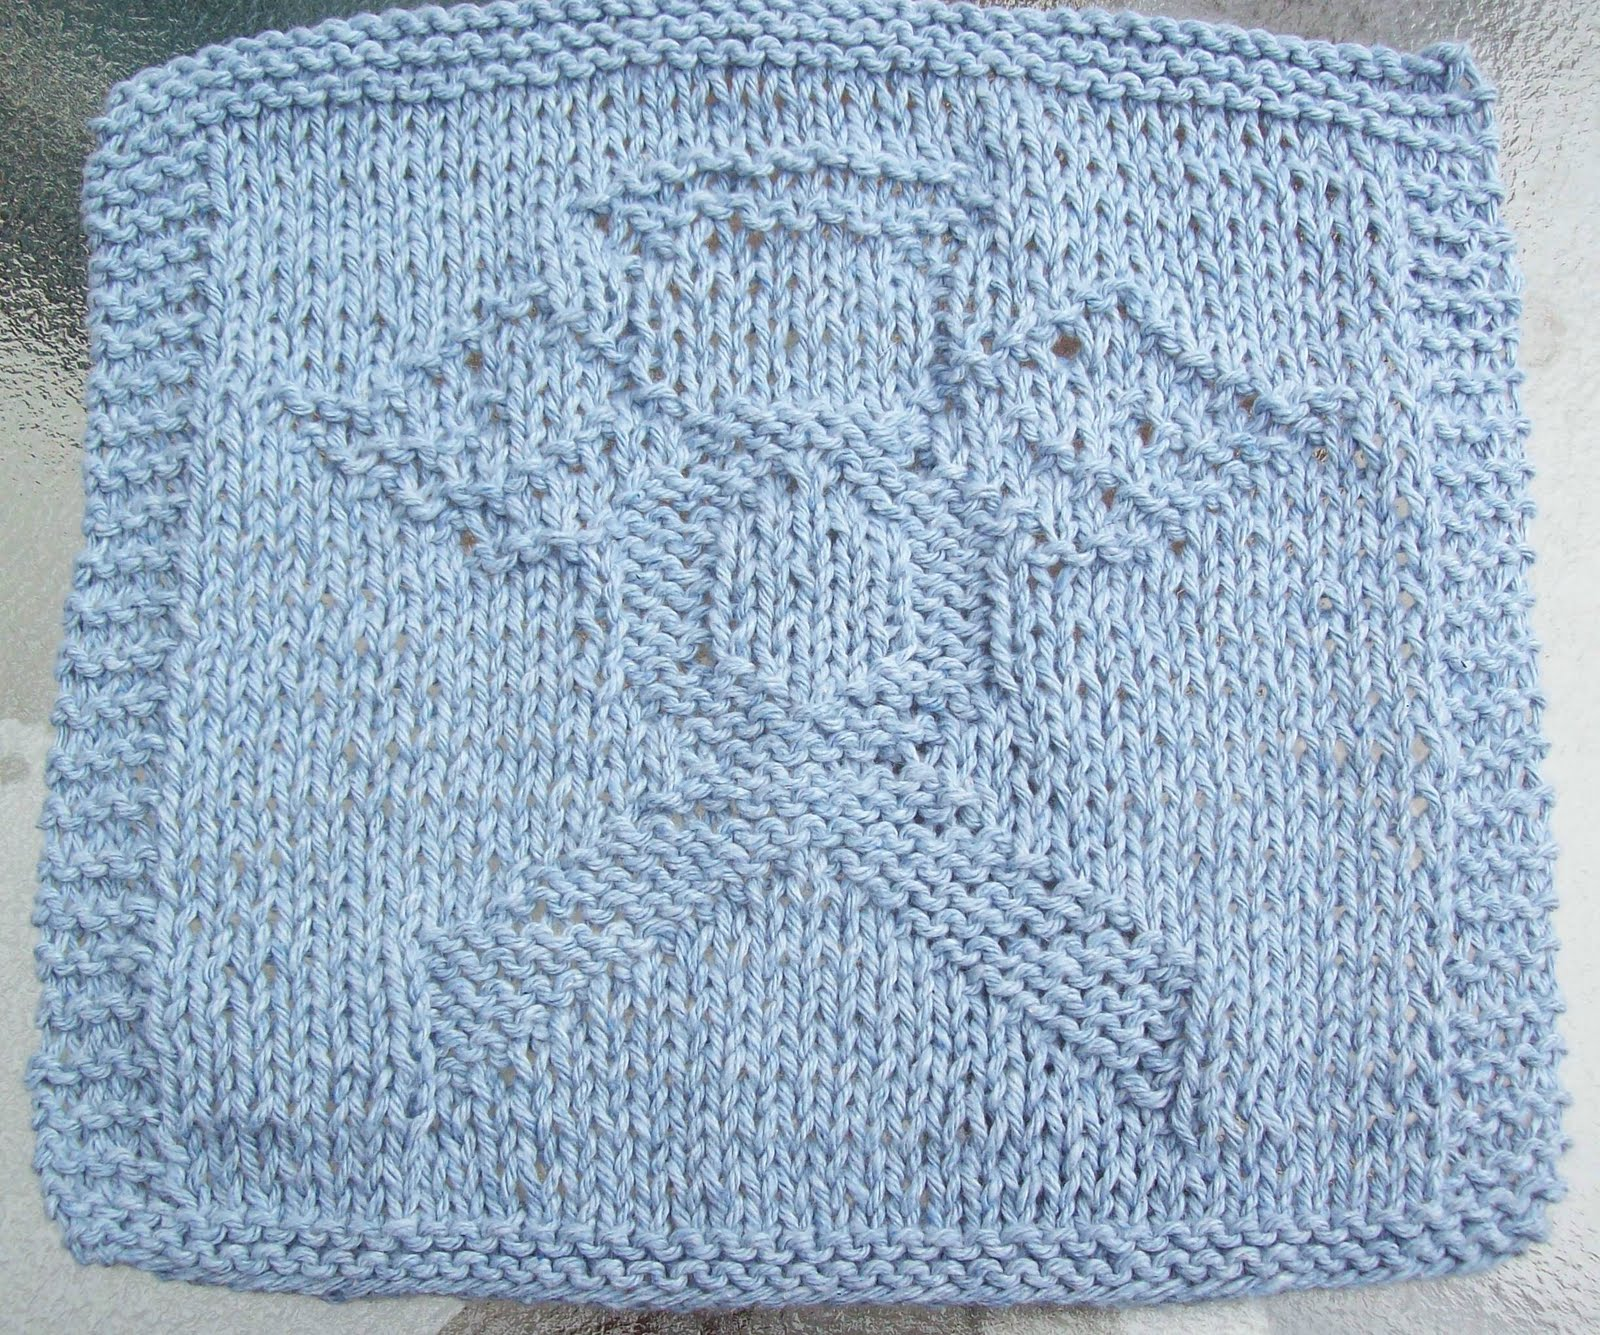 Knitting Pattern Angel : DigKnitty Designs: Cause Angel Knit Dishcloth Pattern